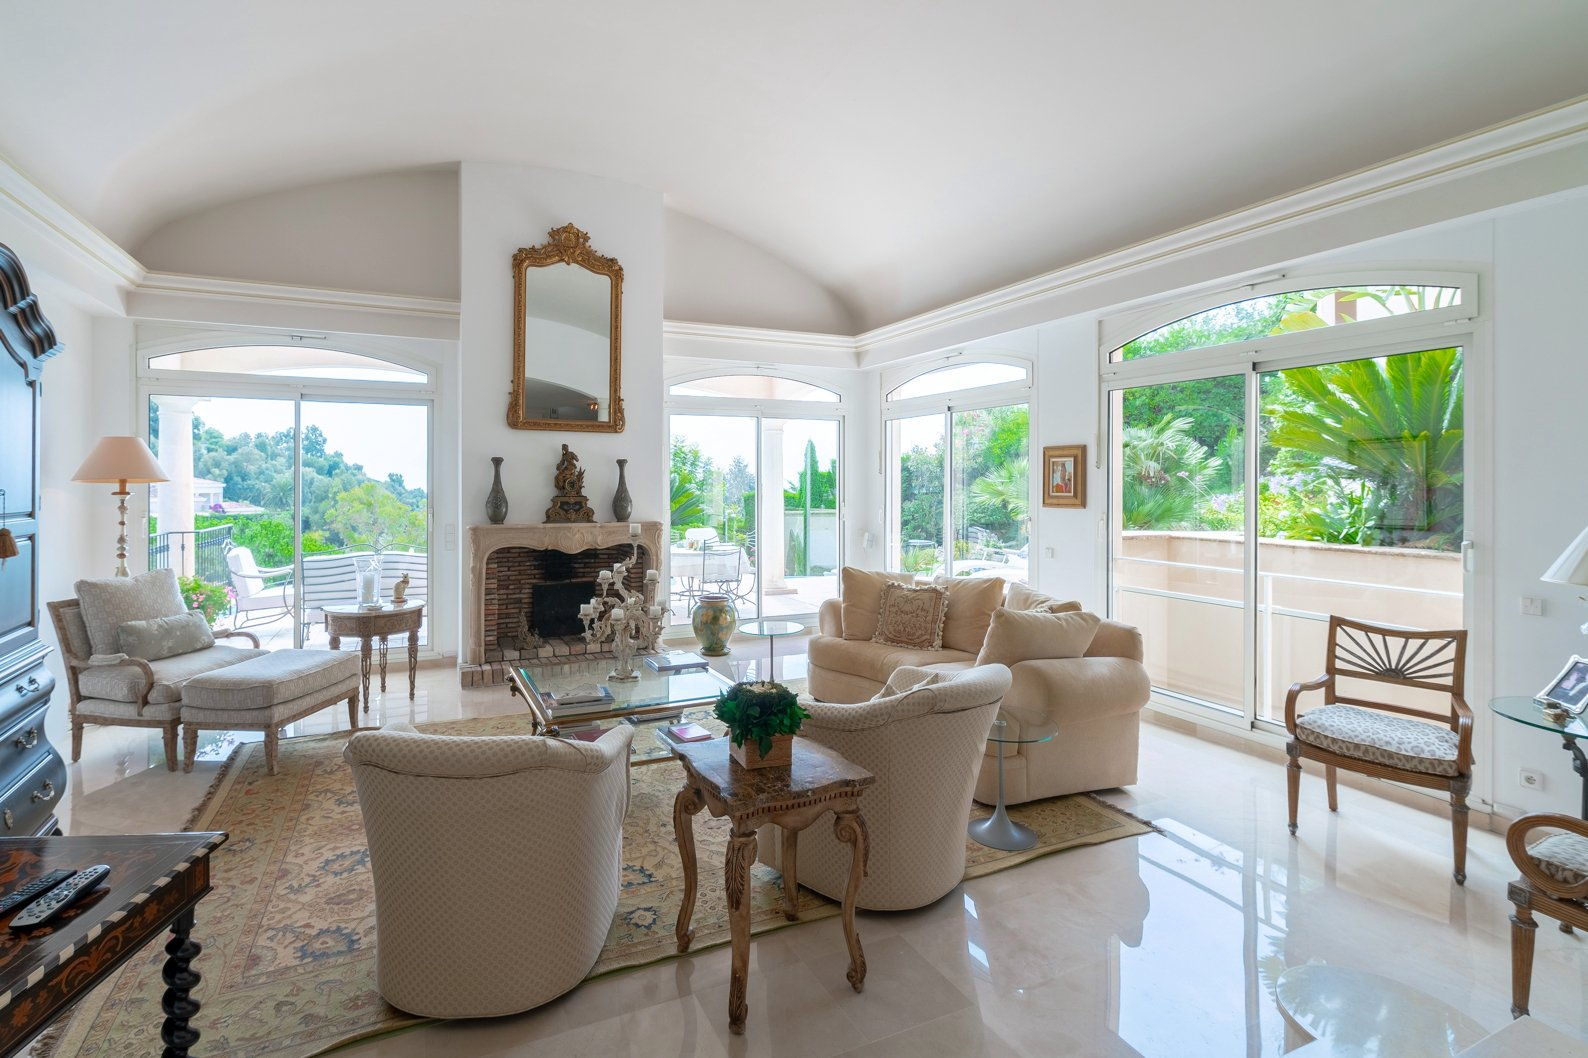 SUPER CANNES - BEAUTIFUL VILLA WITH SEA VIEW